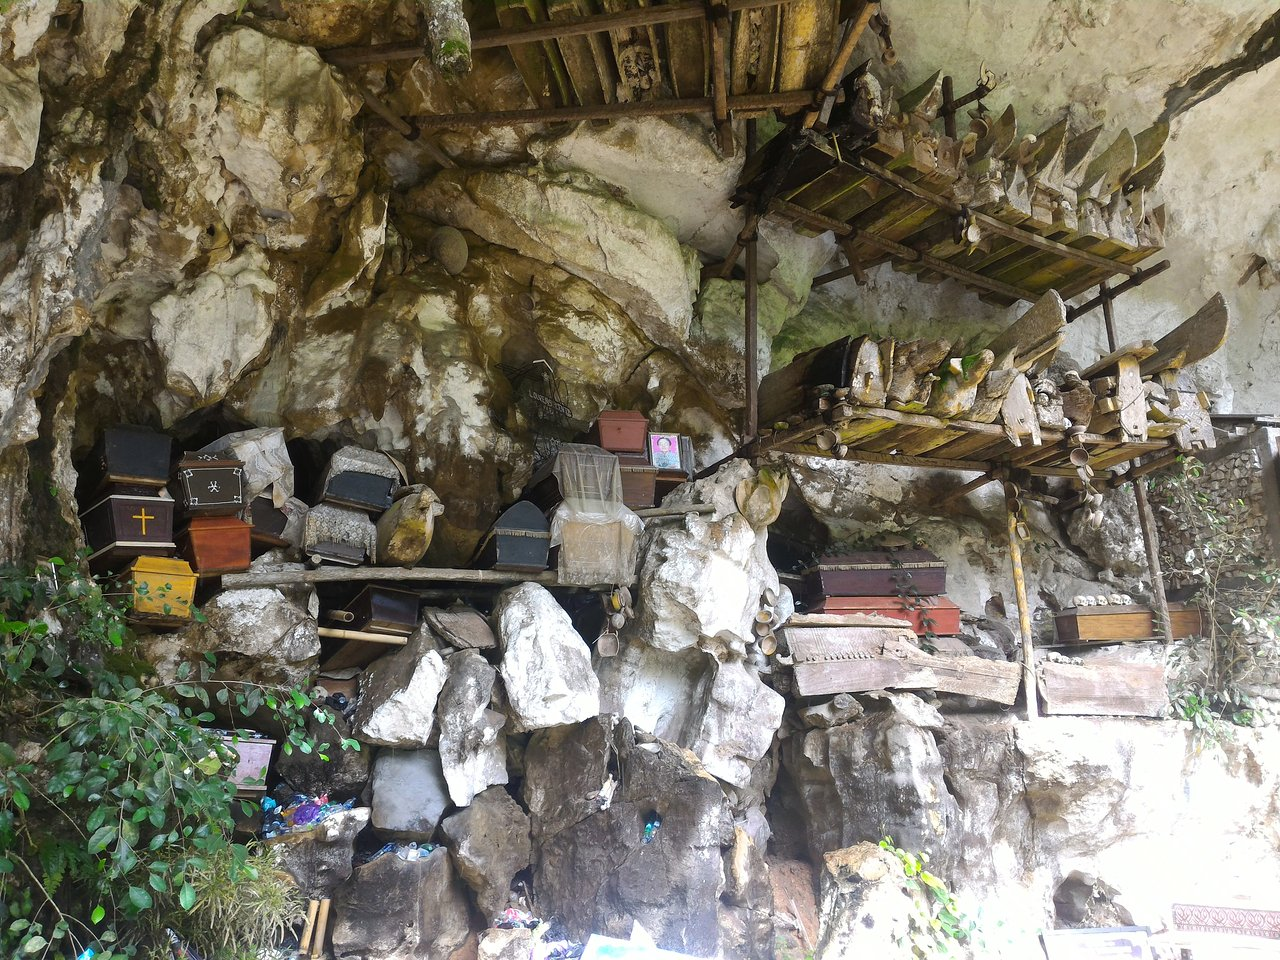 Londa is a cave that serves as a burial ground